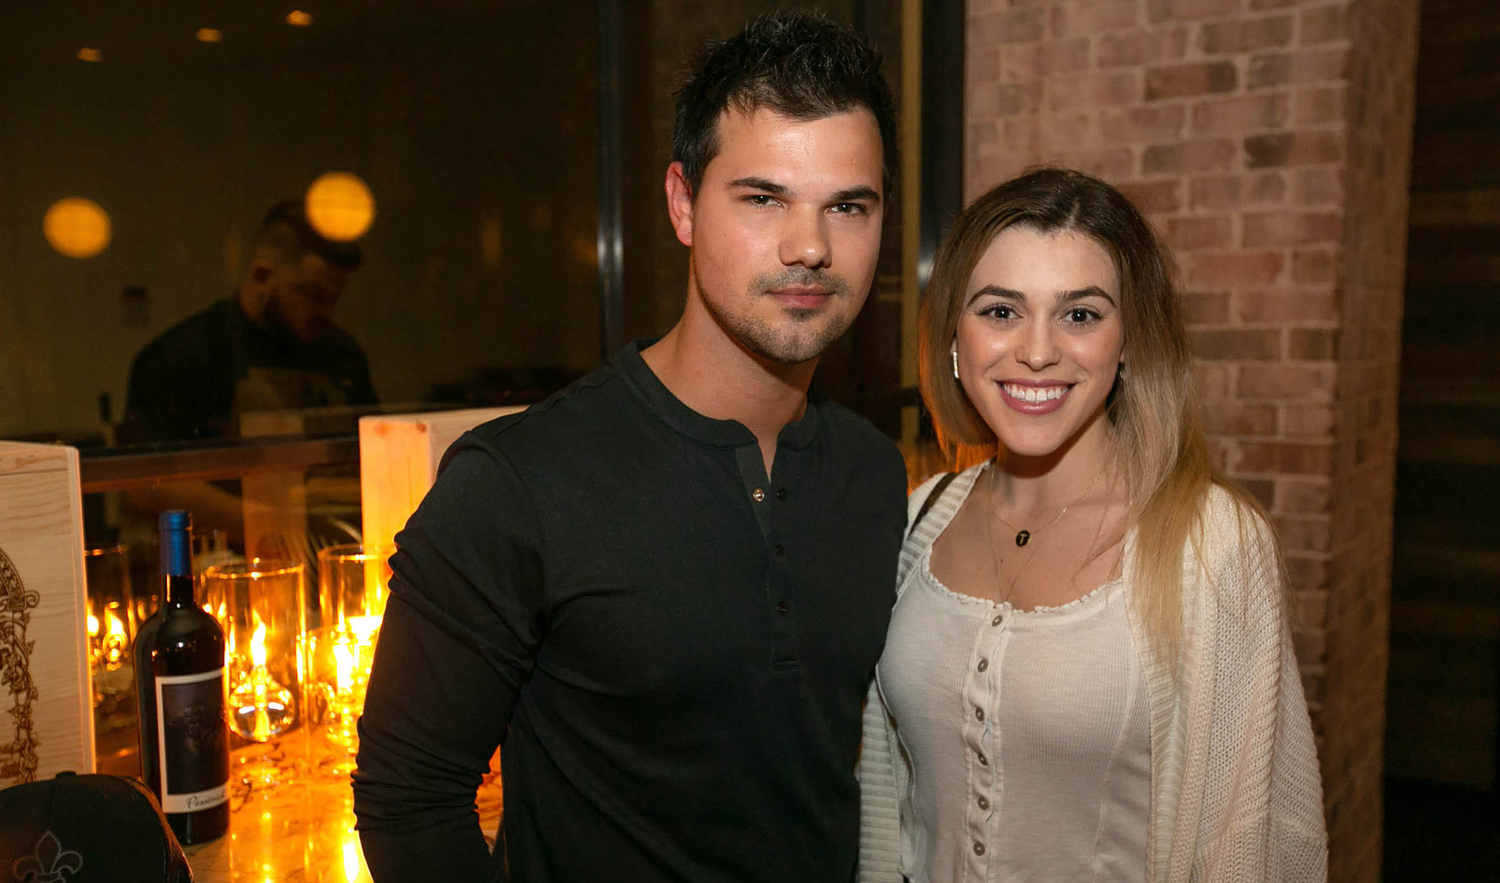 Taylor Lautner & Tay Dome Couple Up for Dinner Date